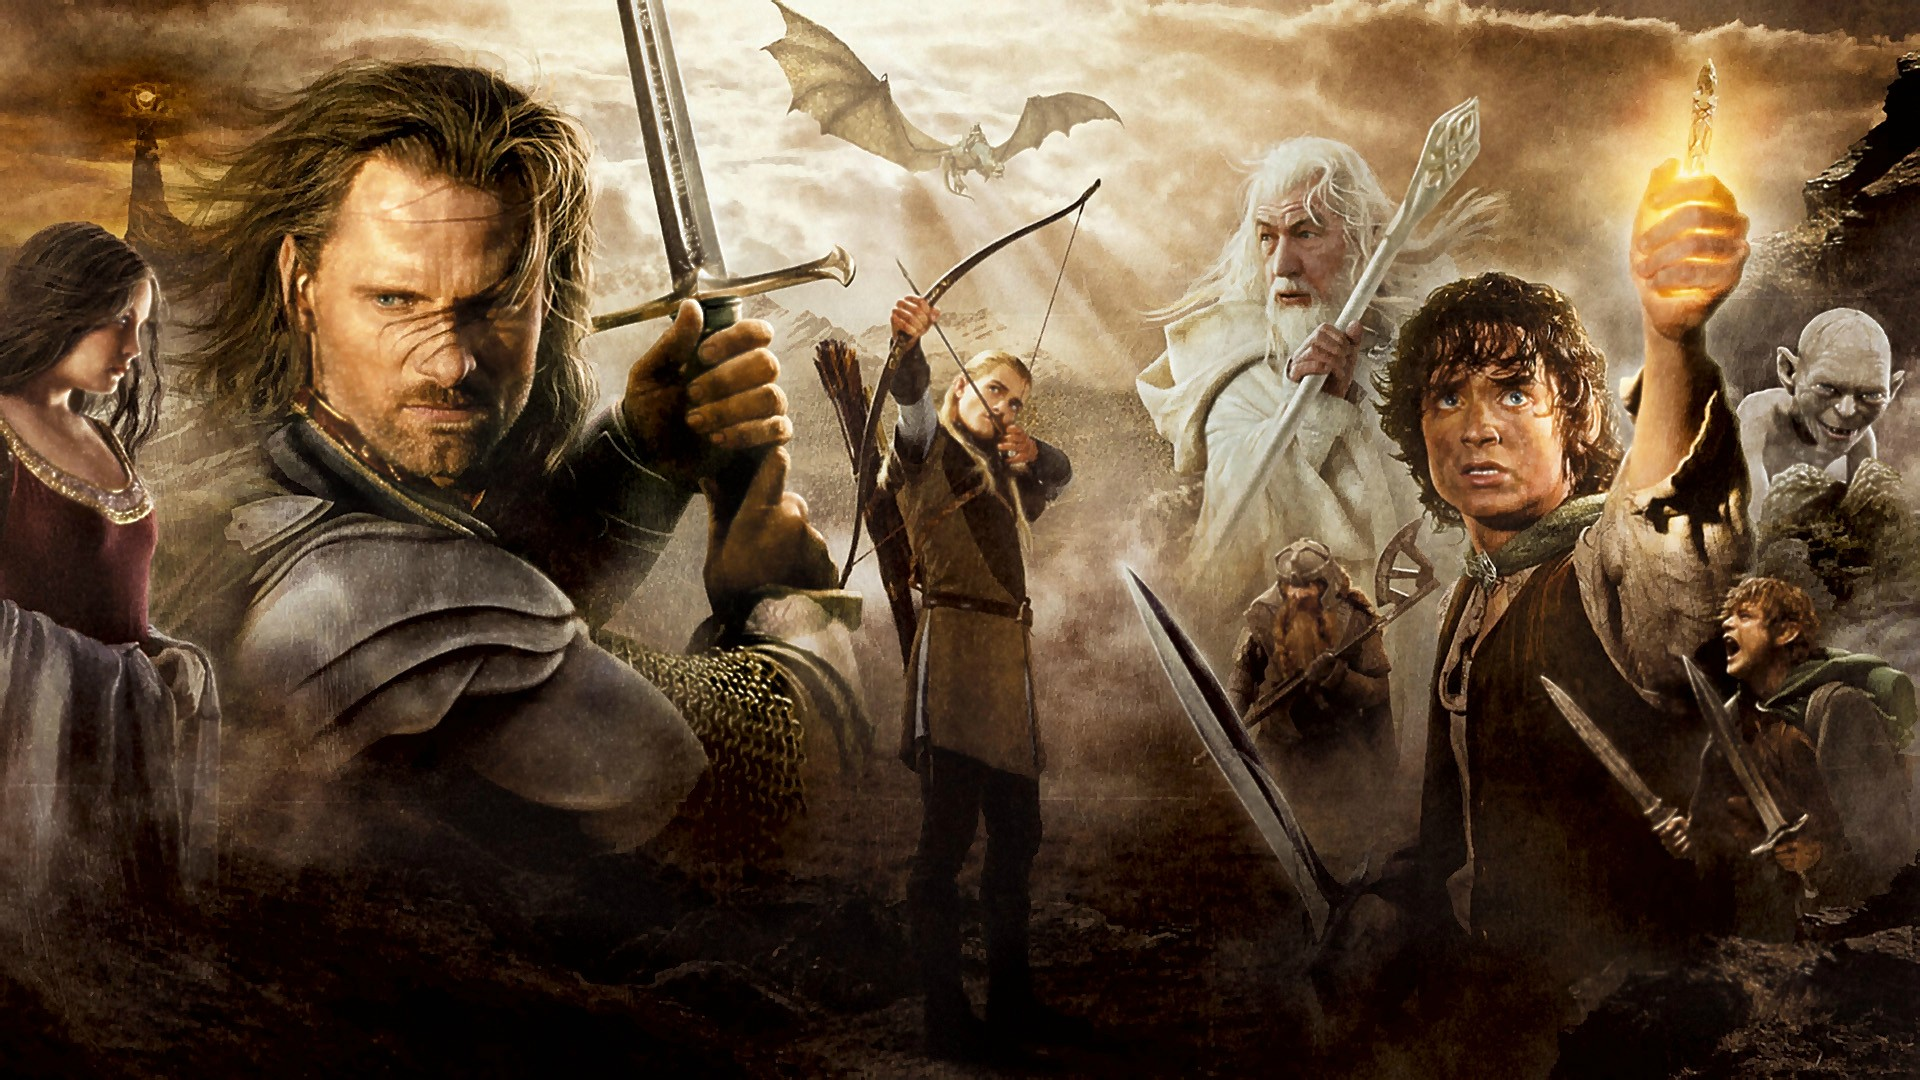 What is your favorite? | The Lord of the Rings